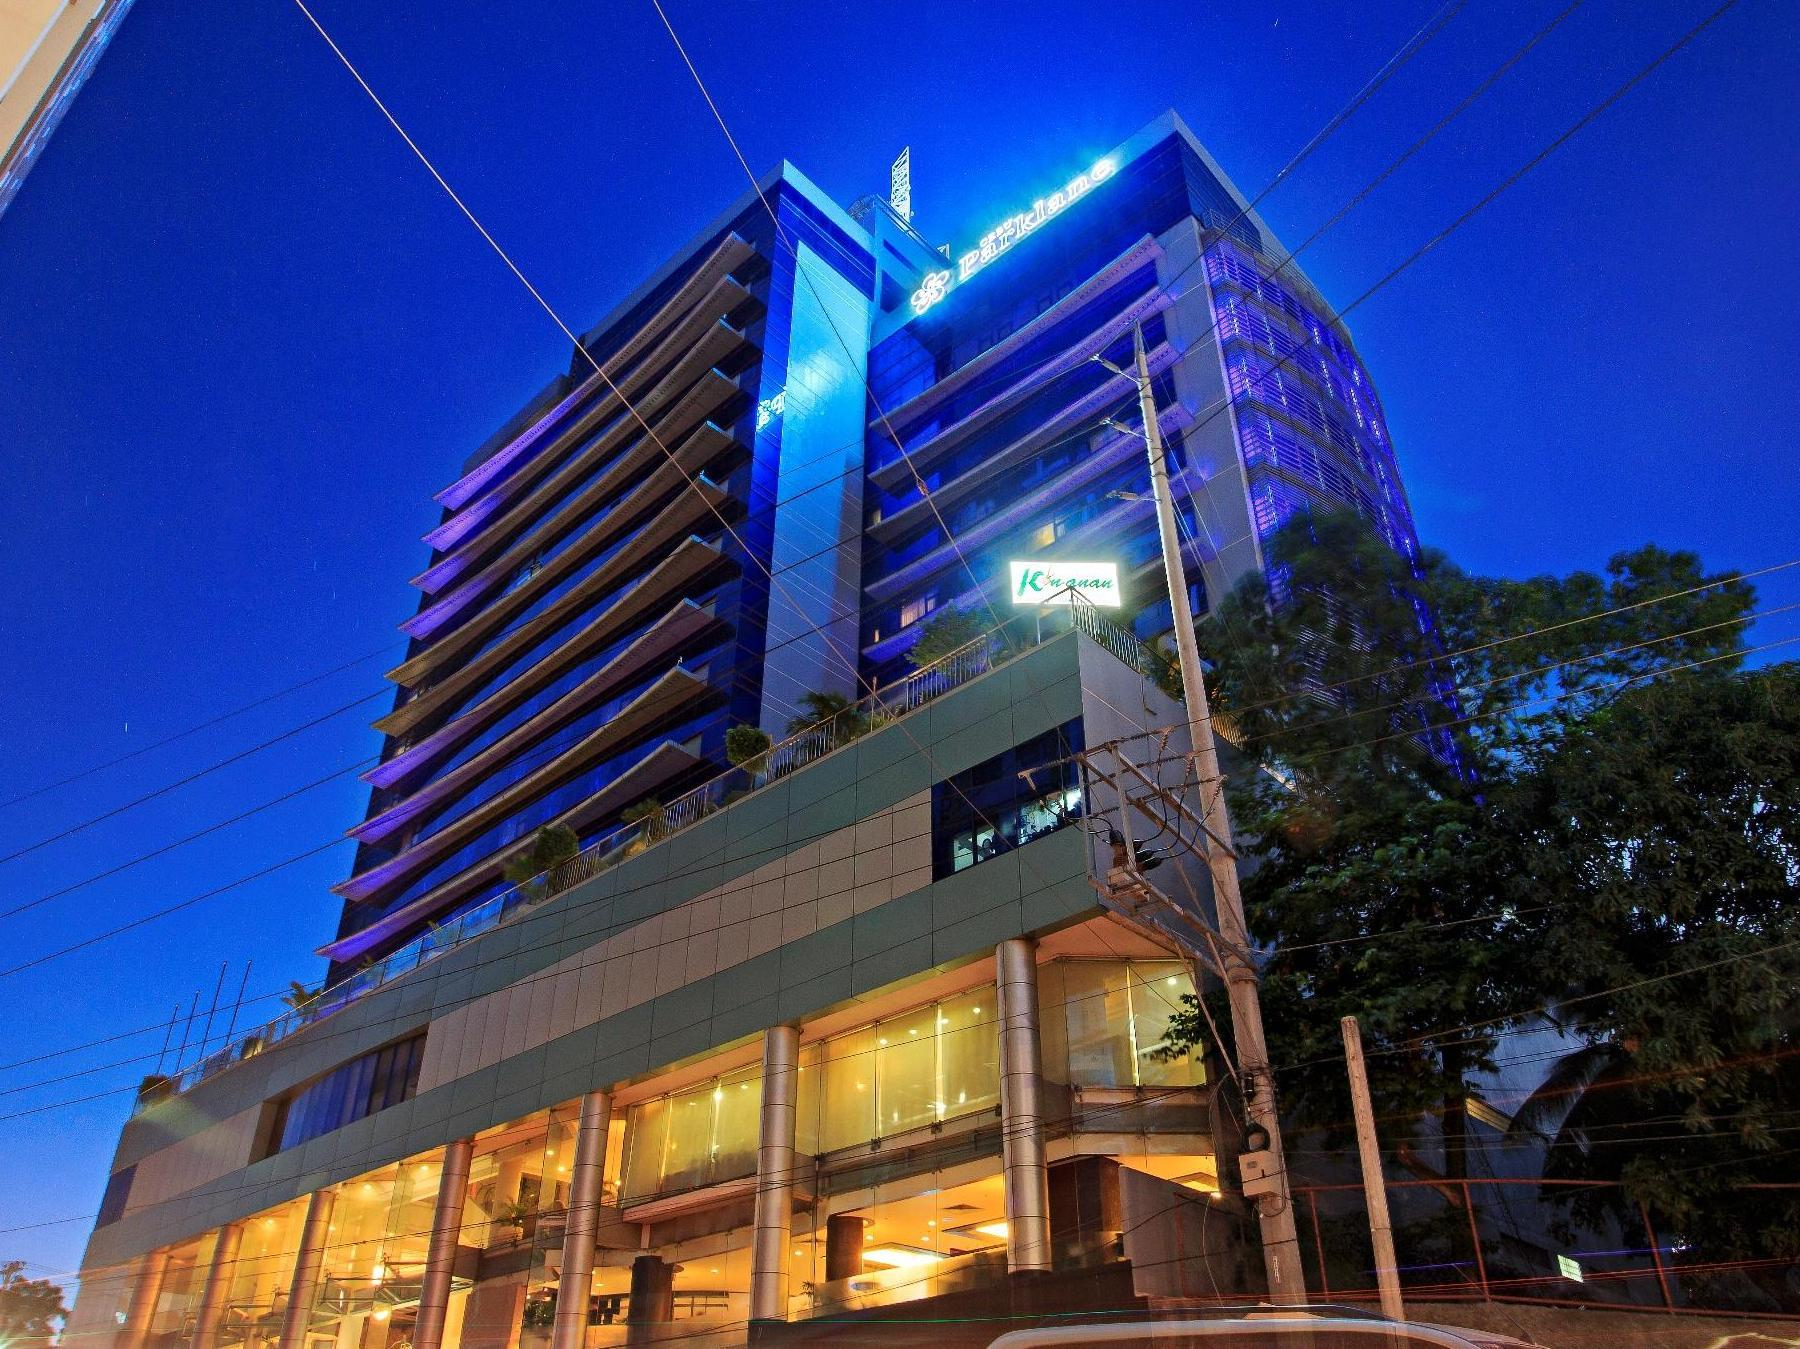 Cebu Parklane International Hotel Cebu - Exterior hotel